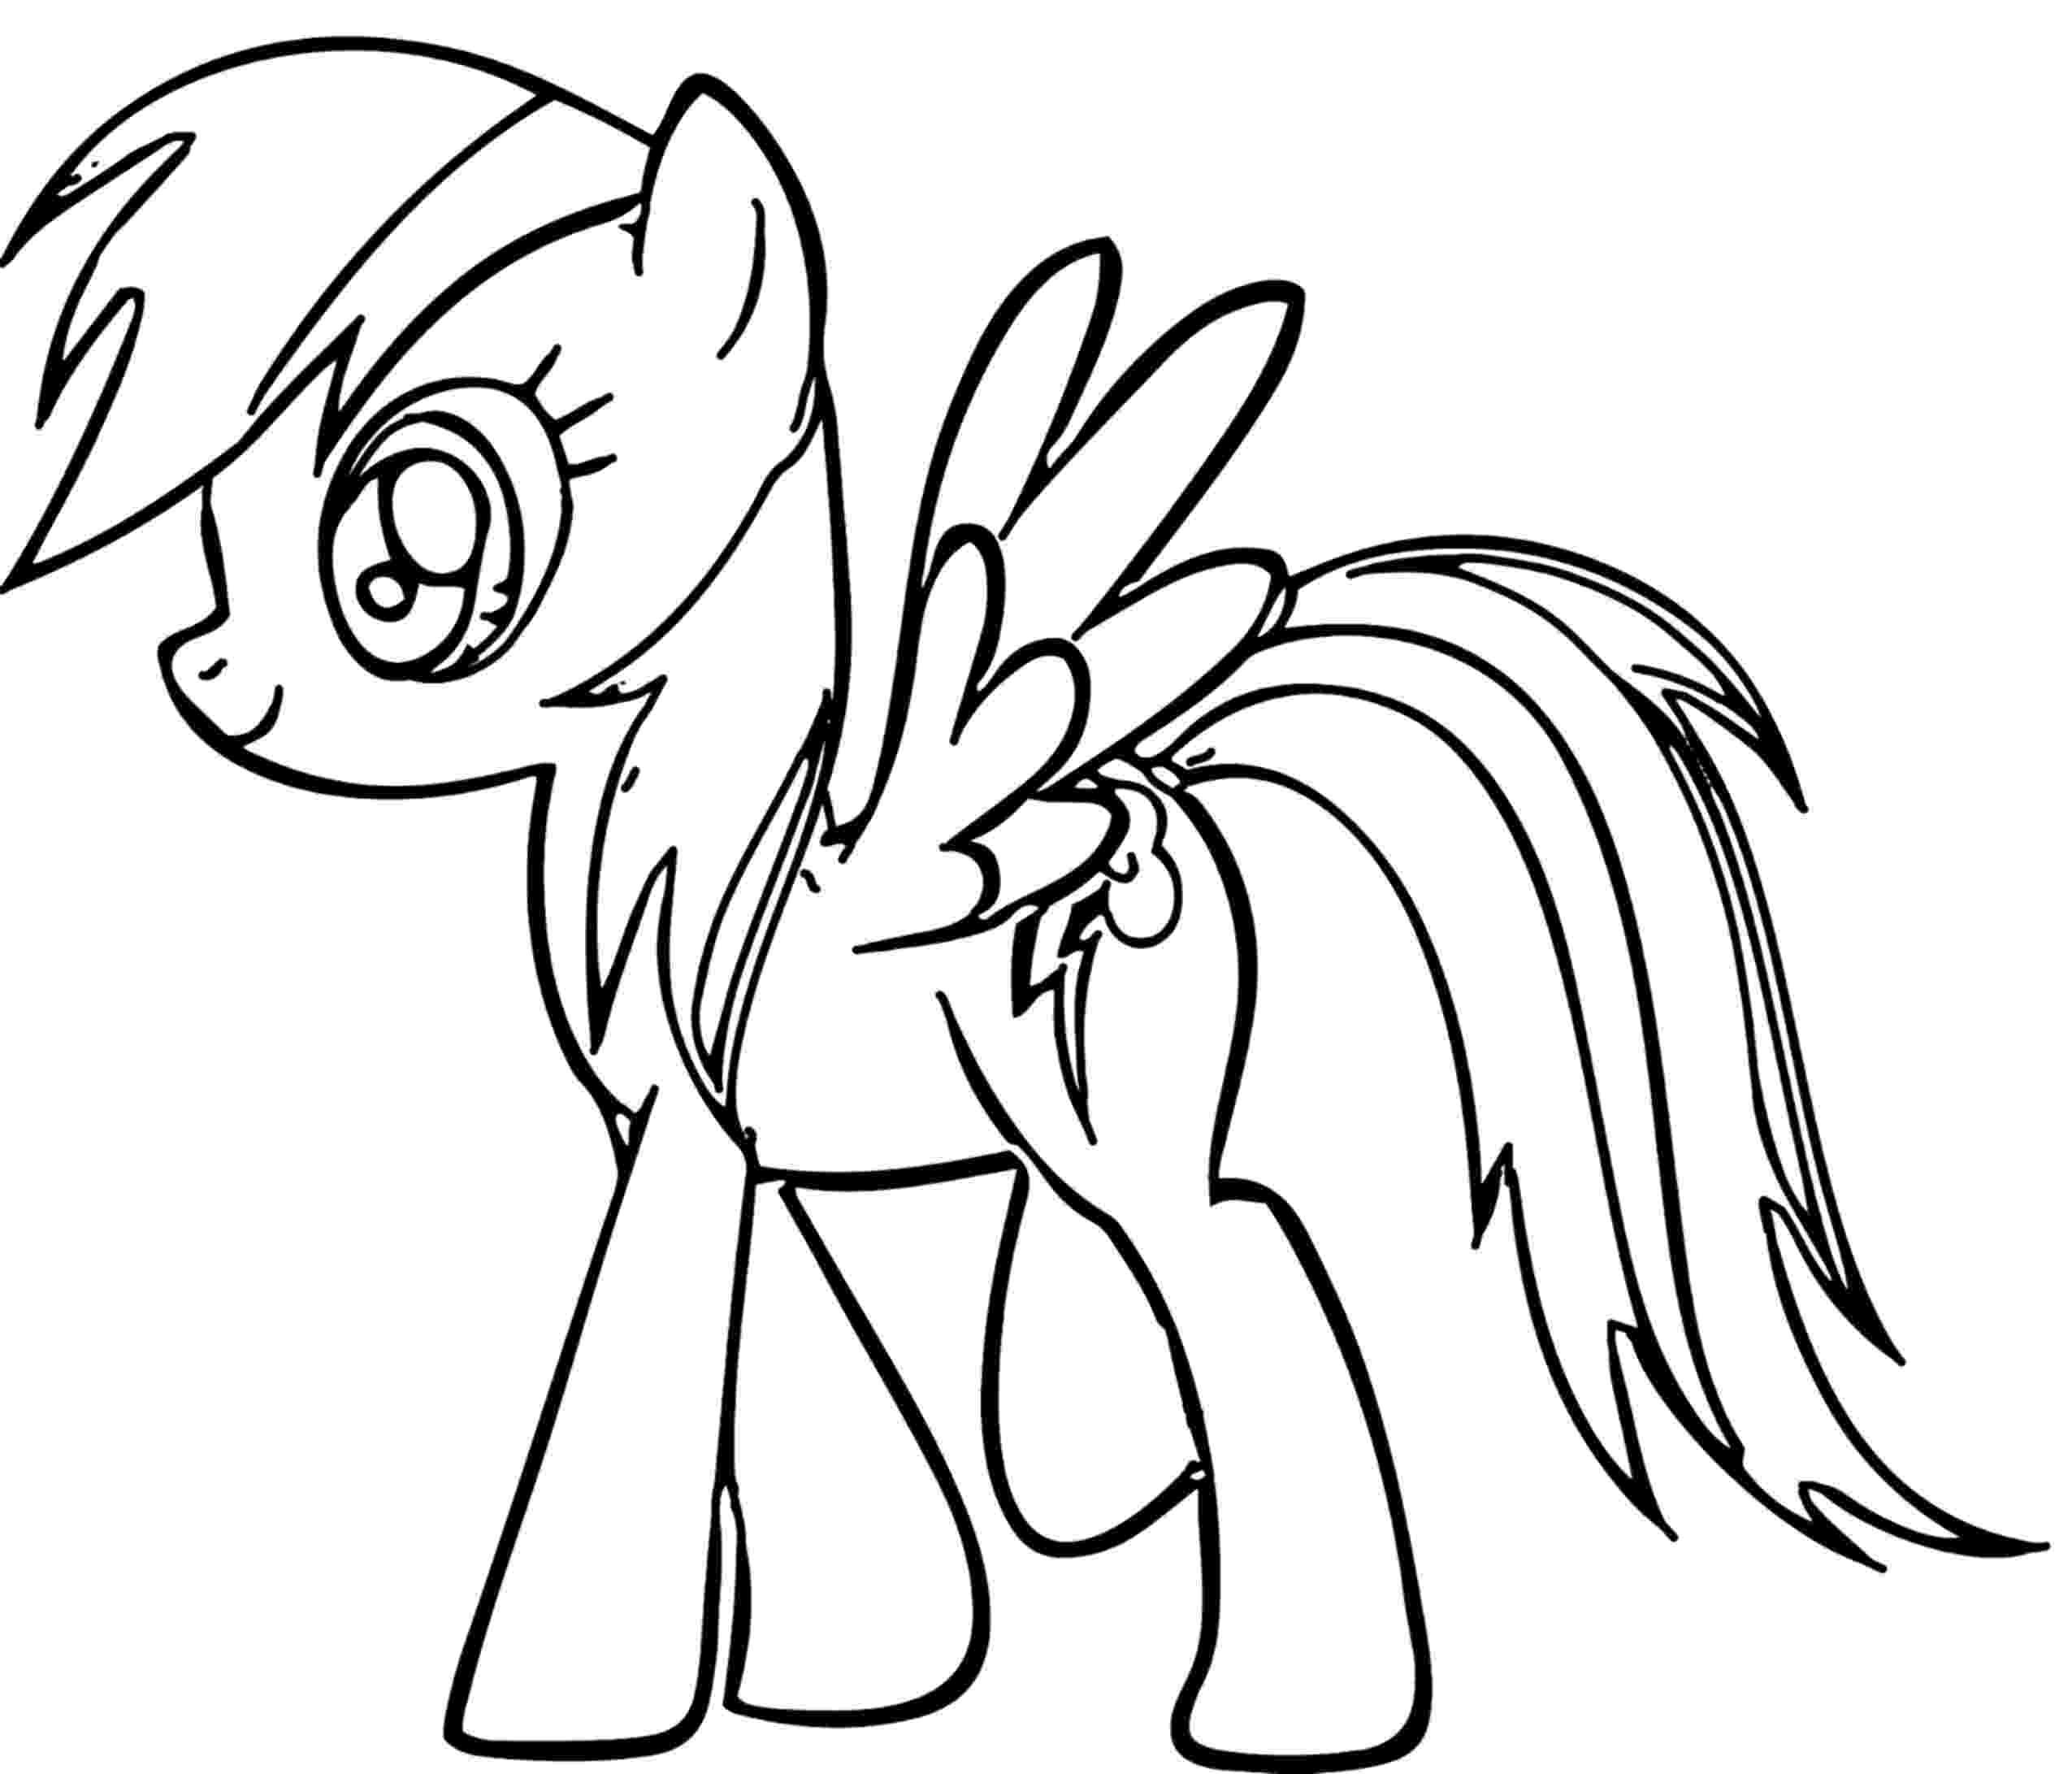 rainbow dash coloring rainbow dash coloring pages best coloring pages for kids coloring rainbow dash